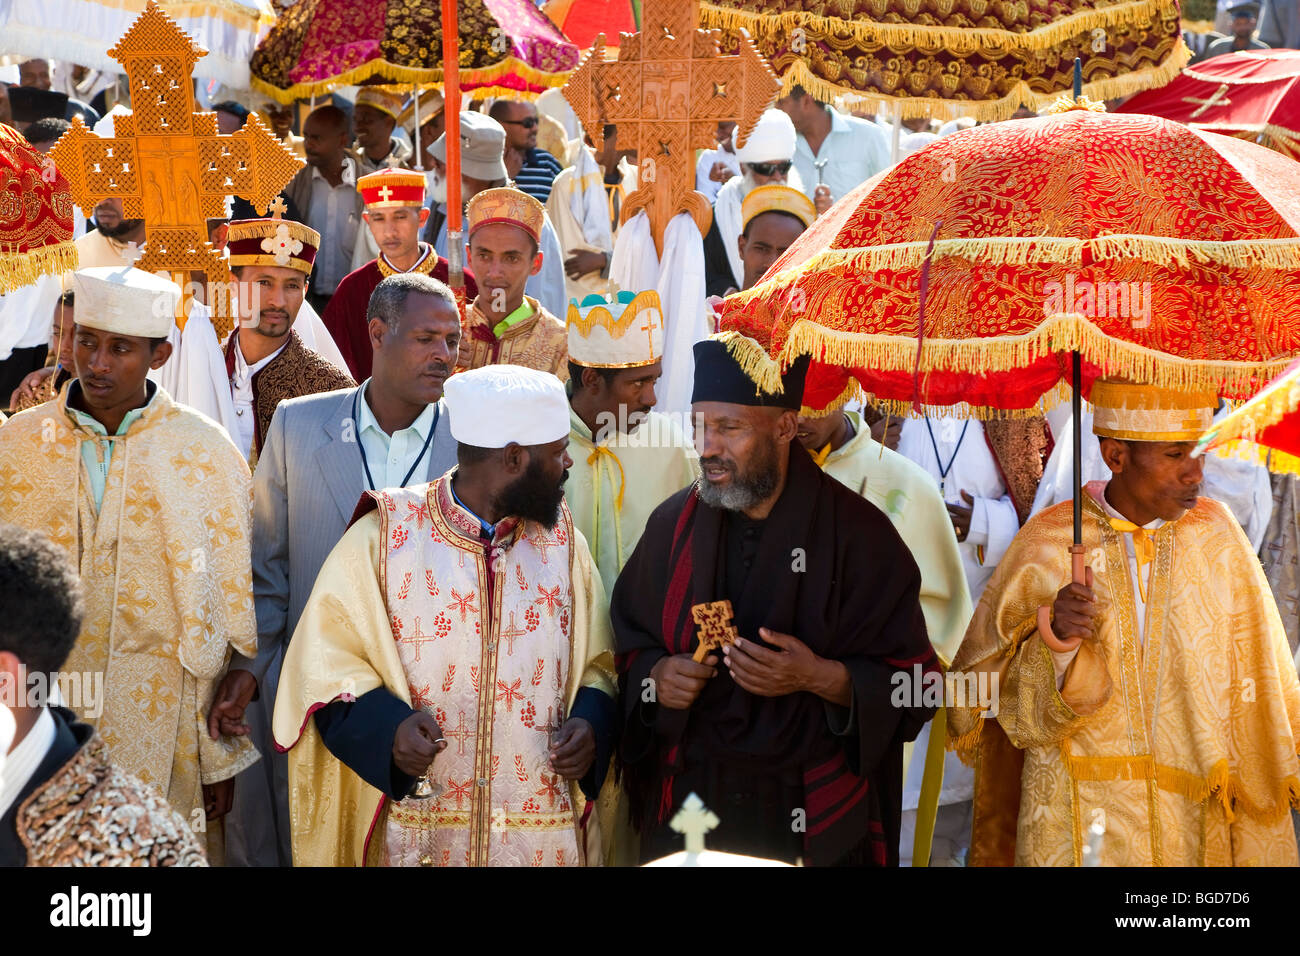 Priests carrying Ark of the Covenant replica's, procession of Timket (celebration of Epithany, Christian Orthodox - Stock Image